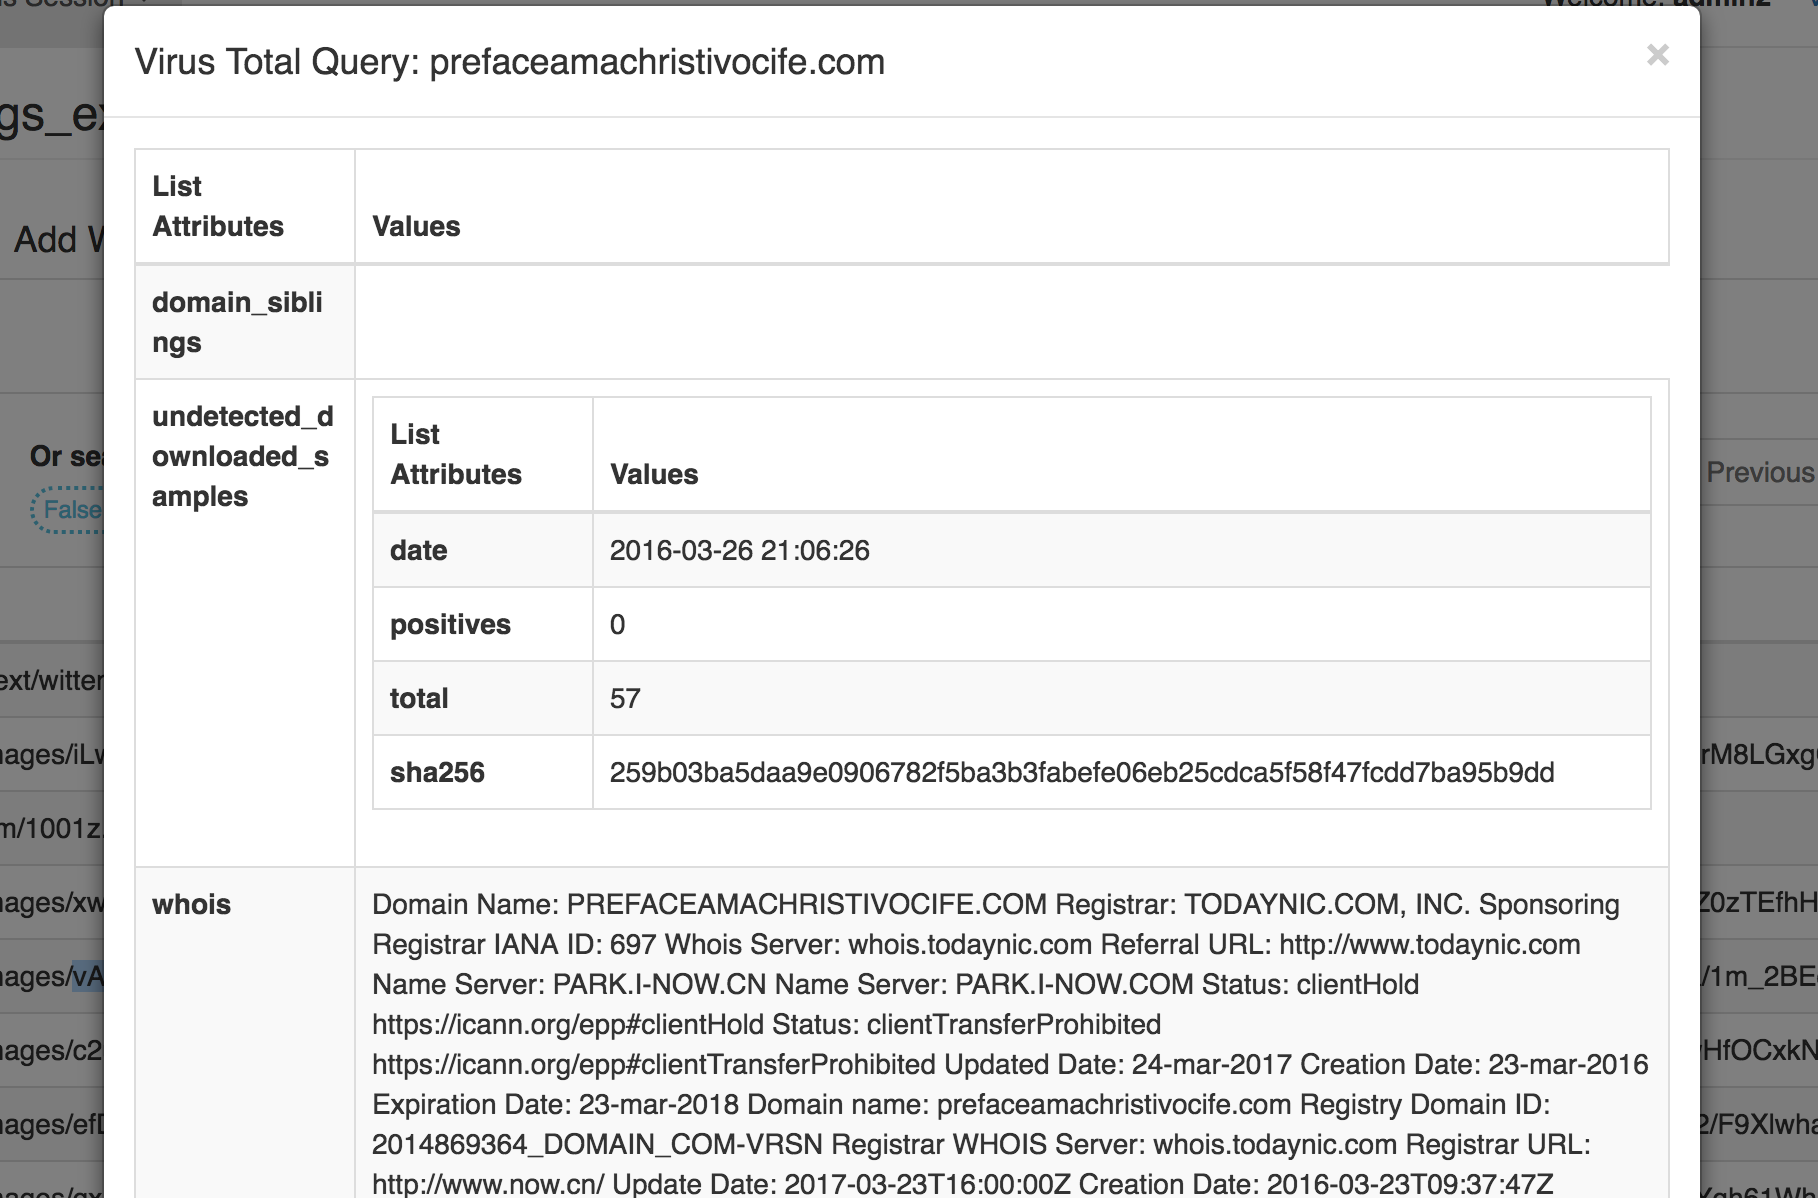 This image shows a request to VirusTotal about an specific domain name